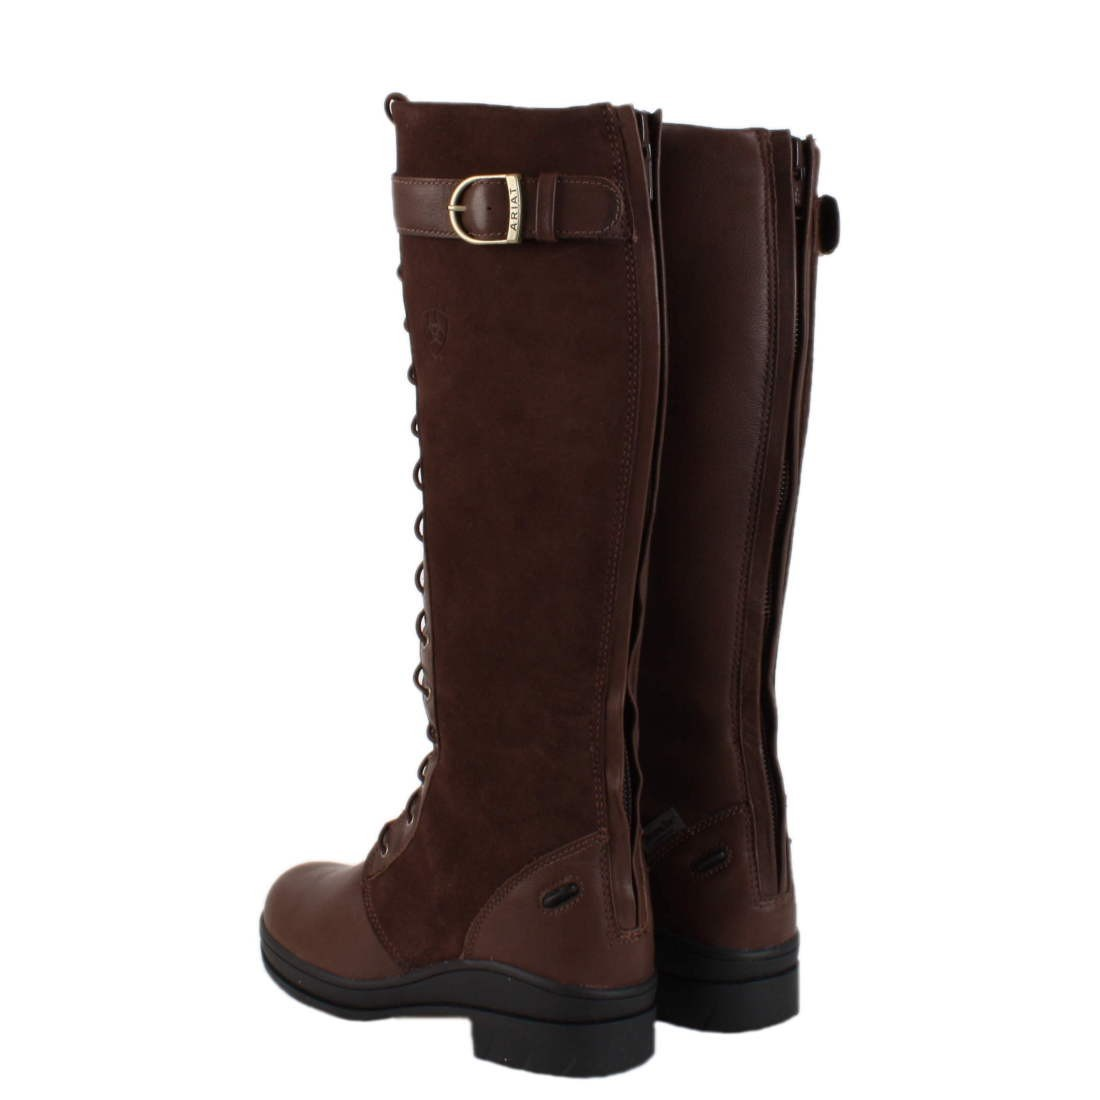 Ariat Coniston Long Country Boot - Chocolate/Brown - Redpost ...